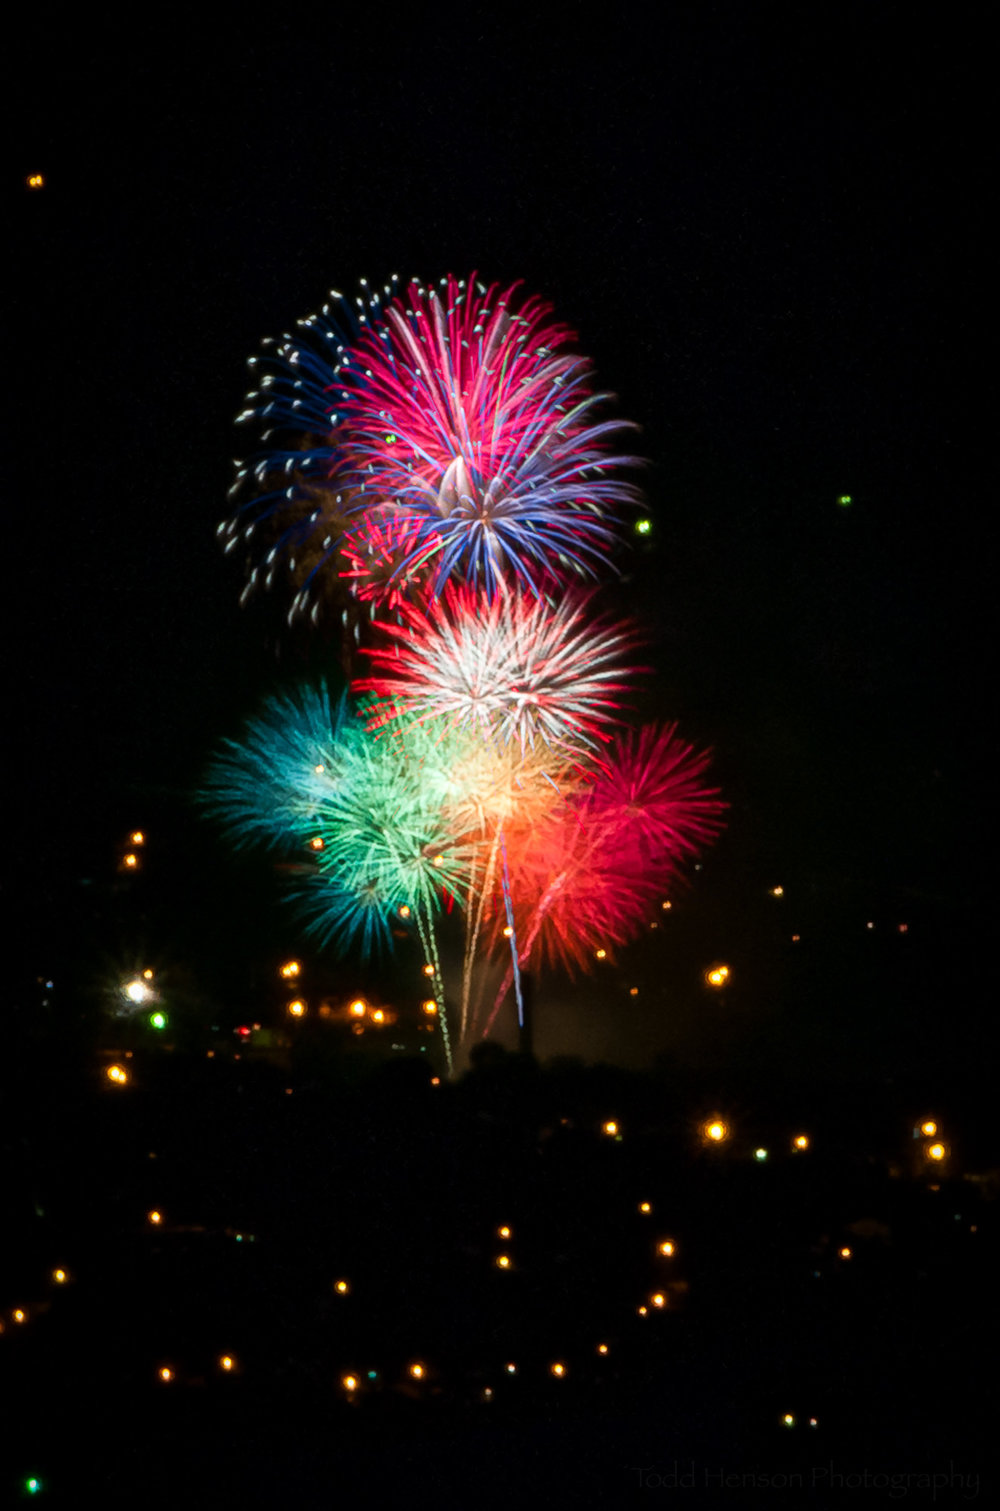 Second grouping of multiple fireworks images.